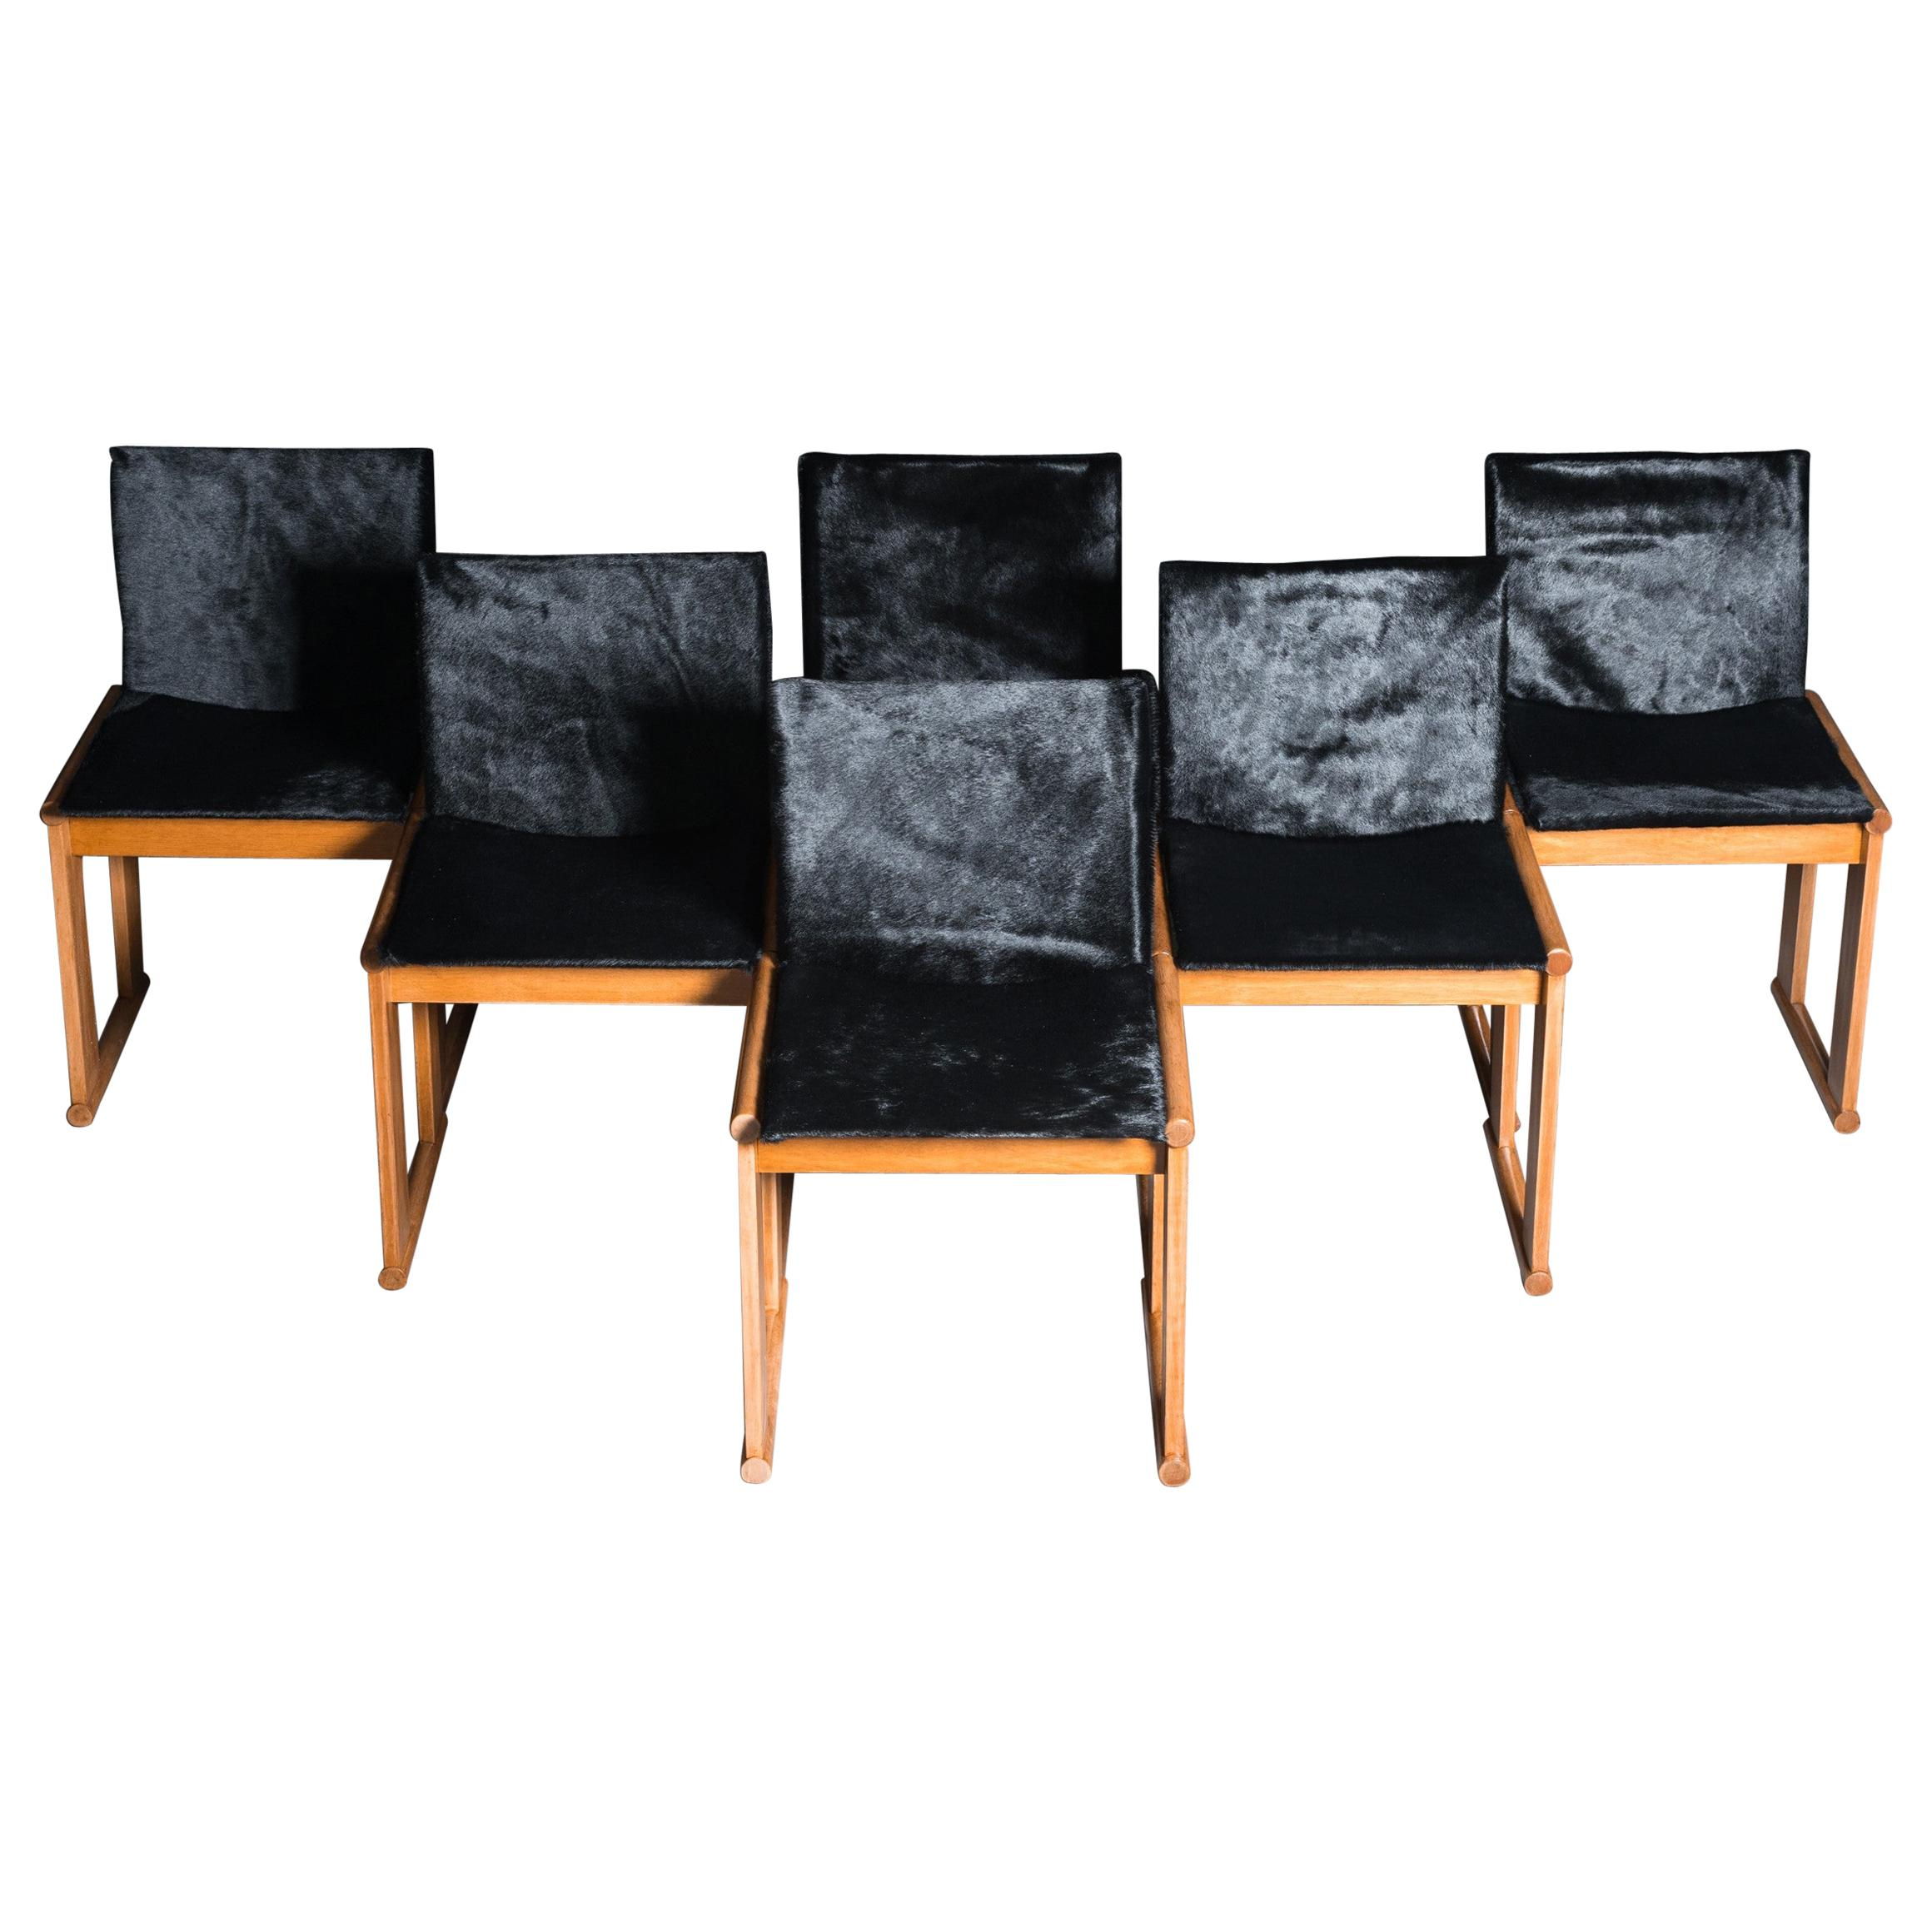 Monk Chairs by Afra & Tobia Scarpa in Poney